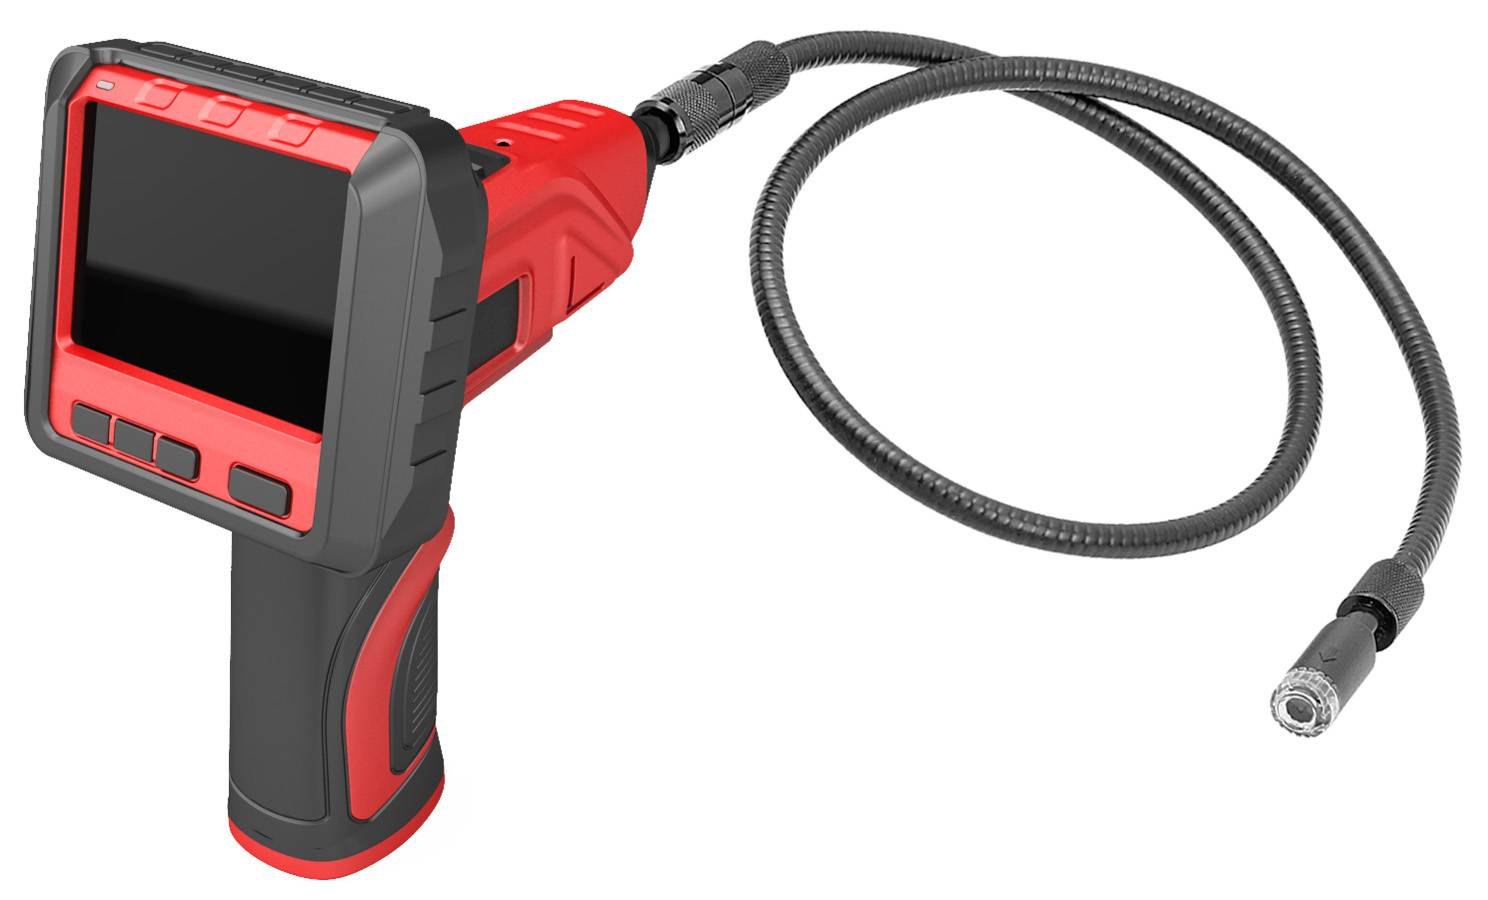 Micro Snake inspection camera with 3.5inch color monitor